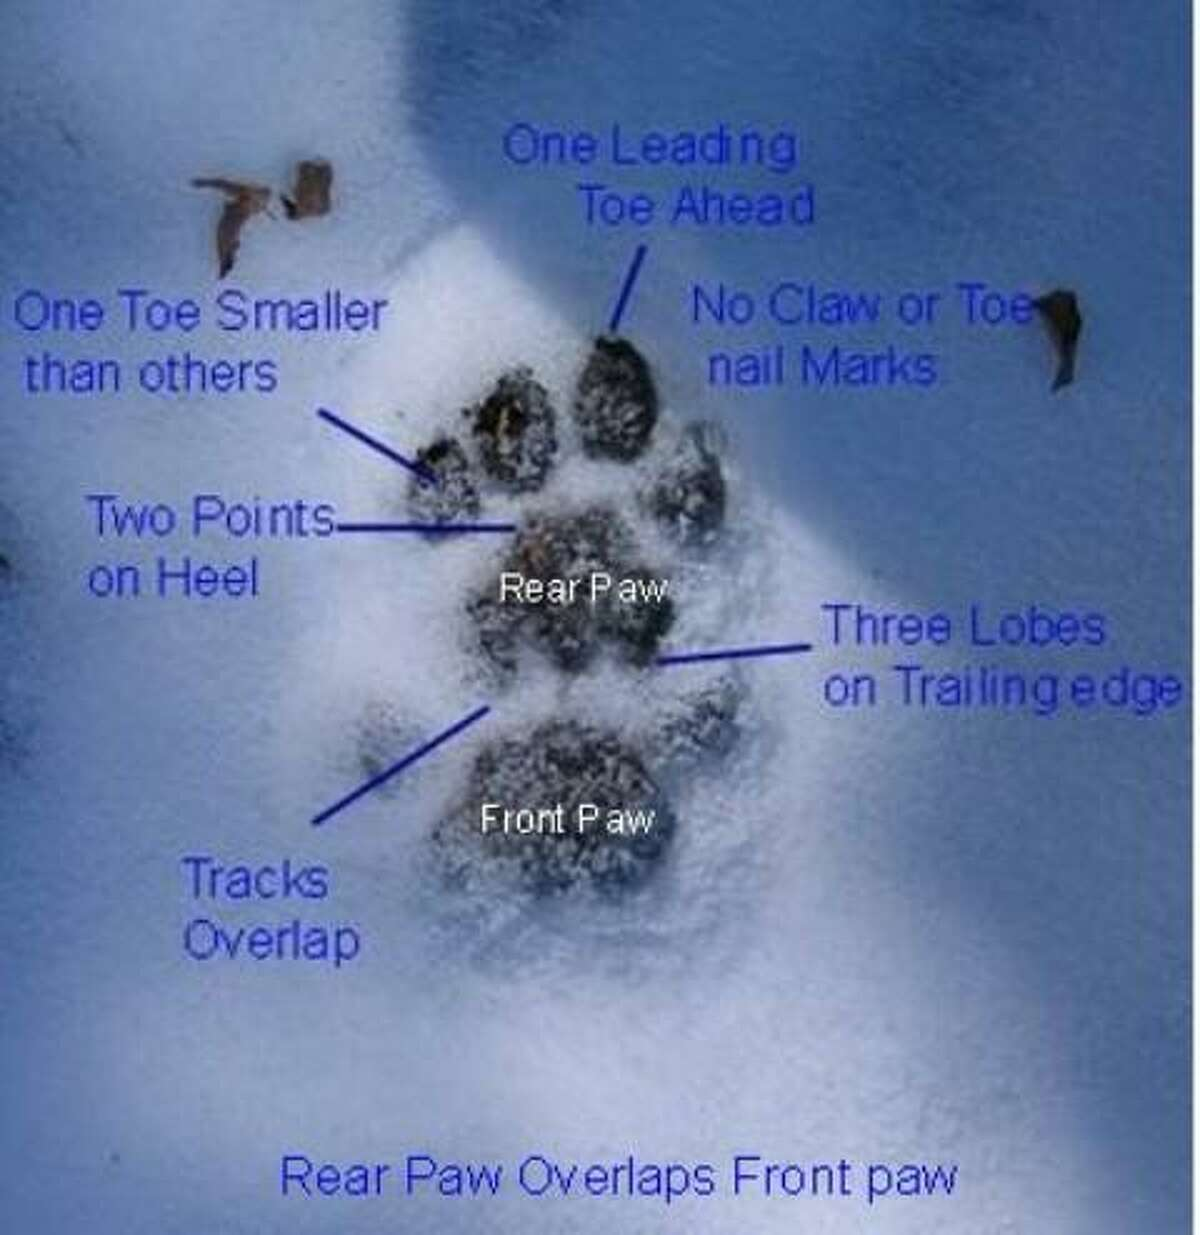 A mountain lion paw print diagram. Photo courtesy of Bill Betty